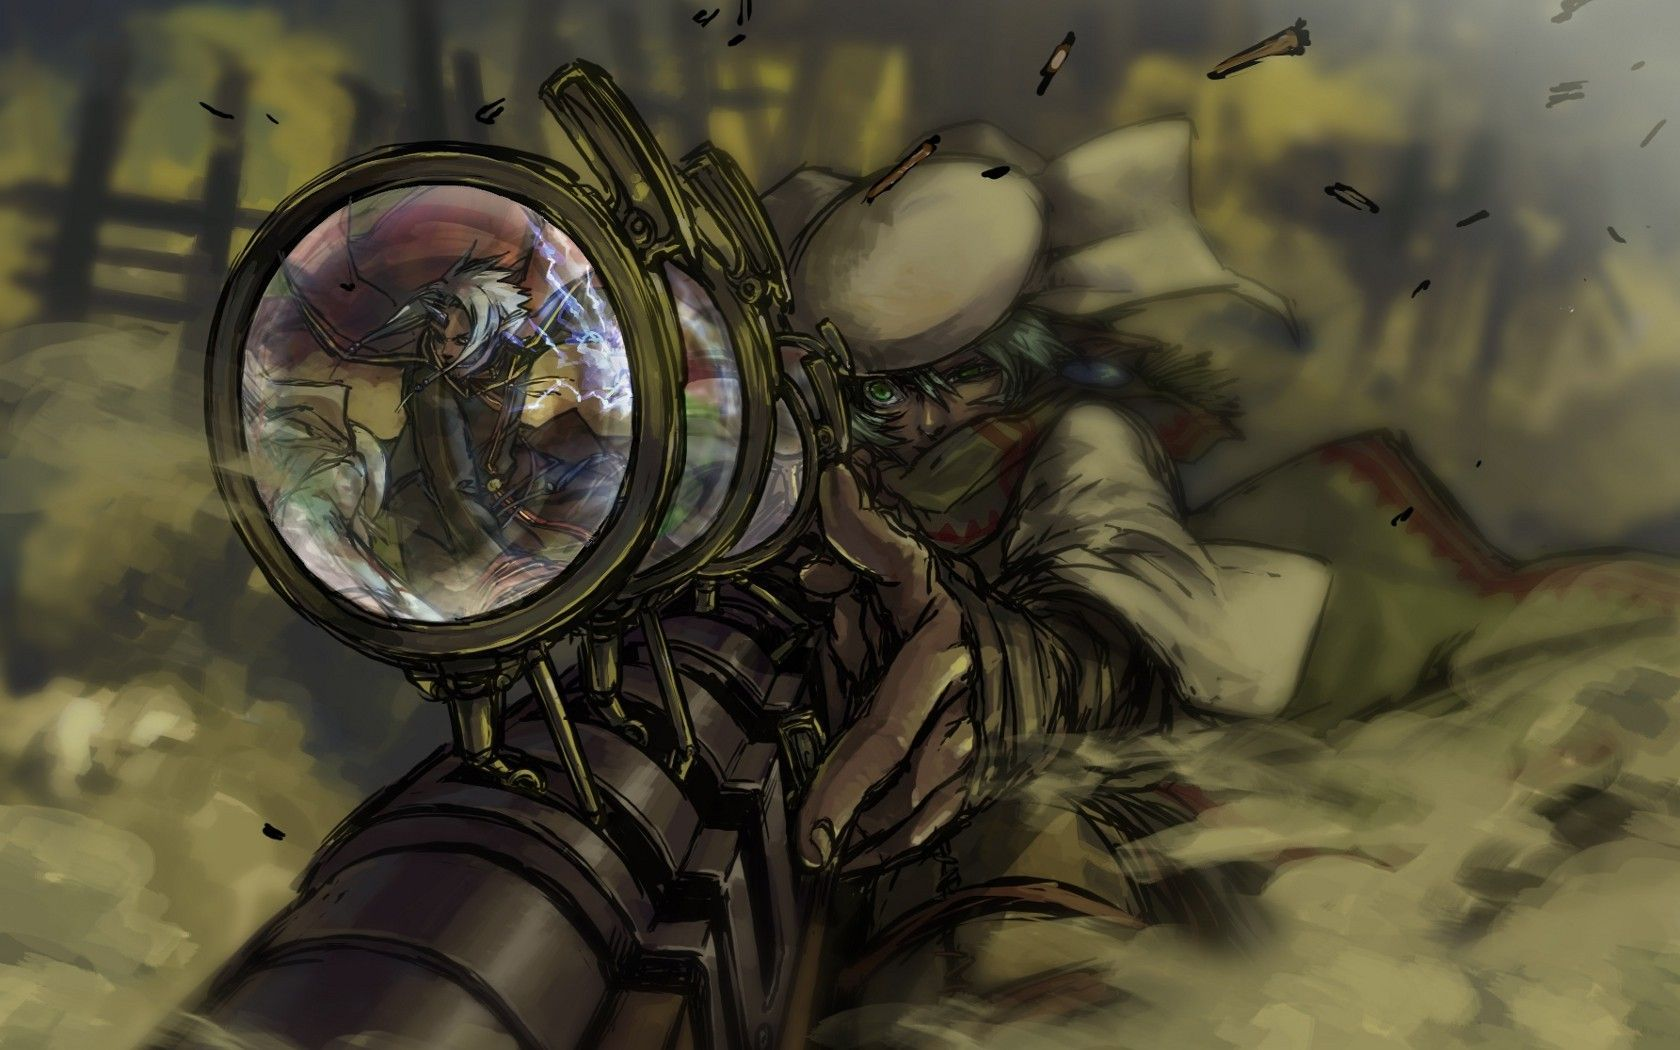 Anime Steampunk Wallpapers Top Free Anime Steampunk Backgrounds